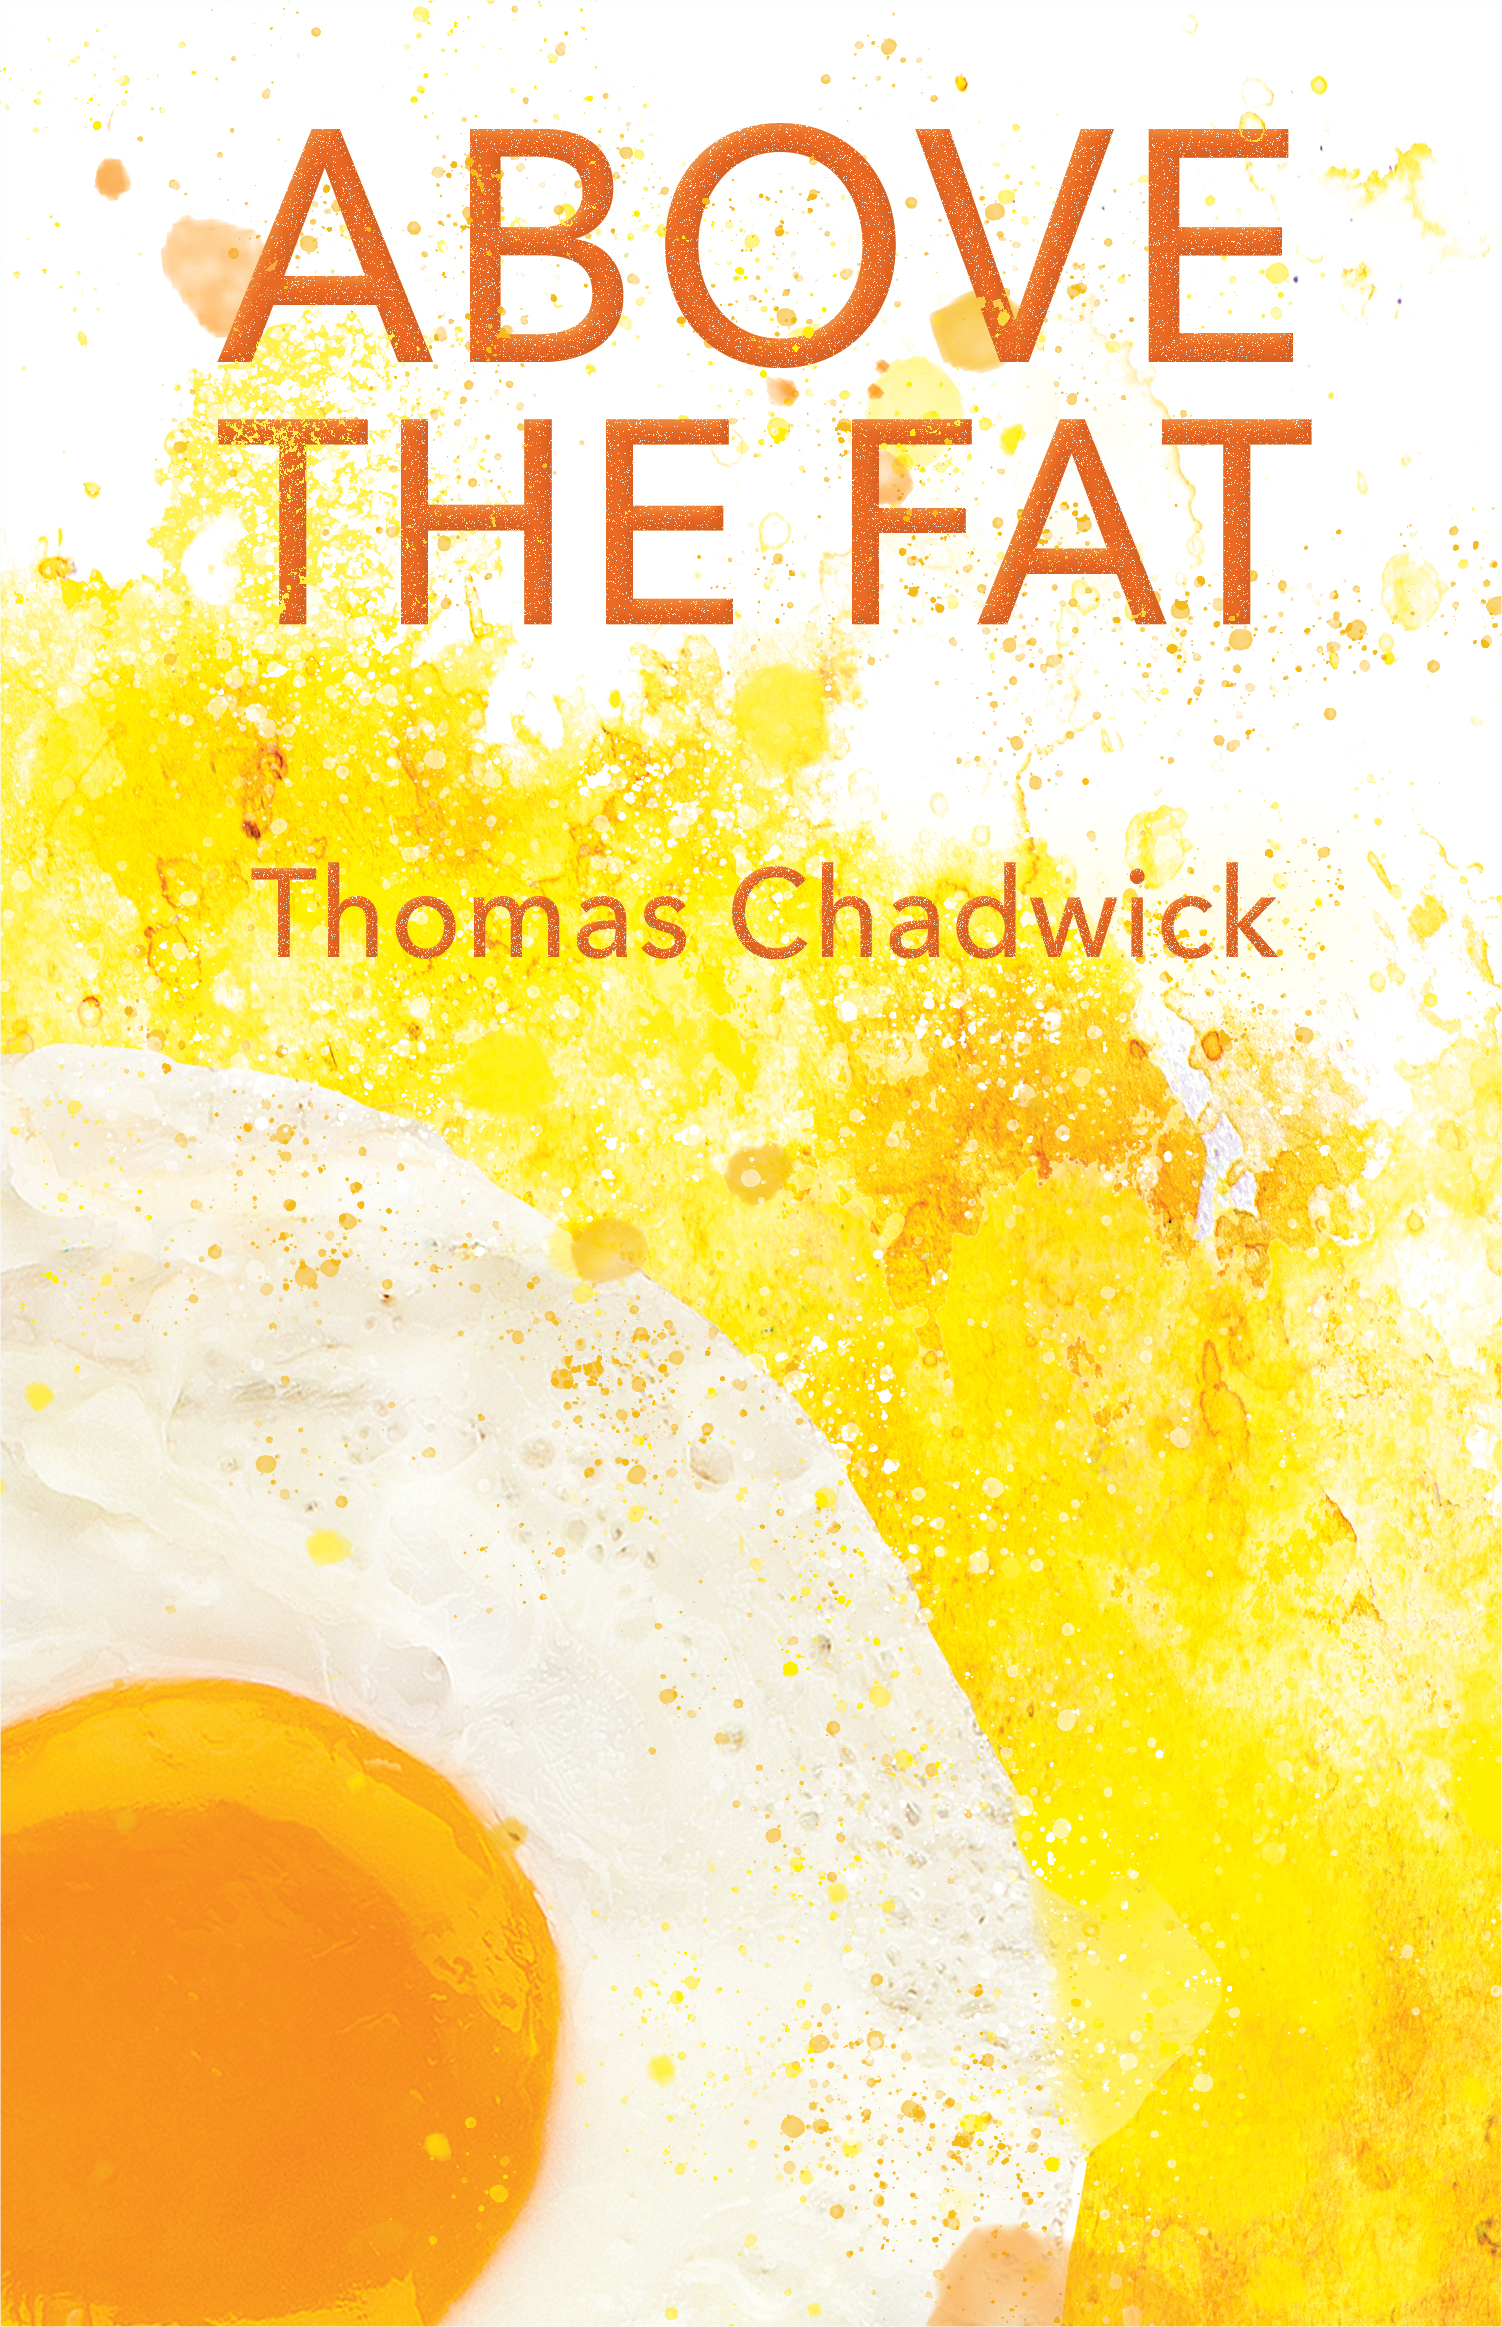 April 2019: Above the Fat by Thomas Chadwick (Splice Publishing)